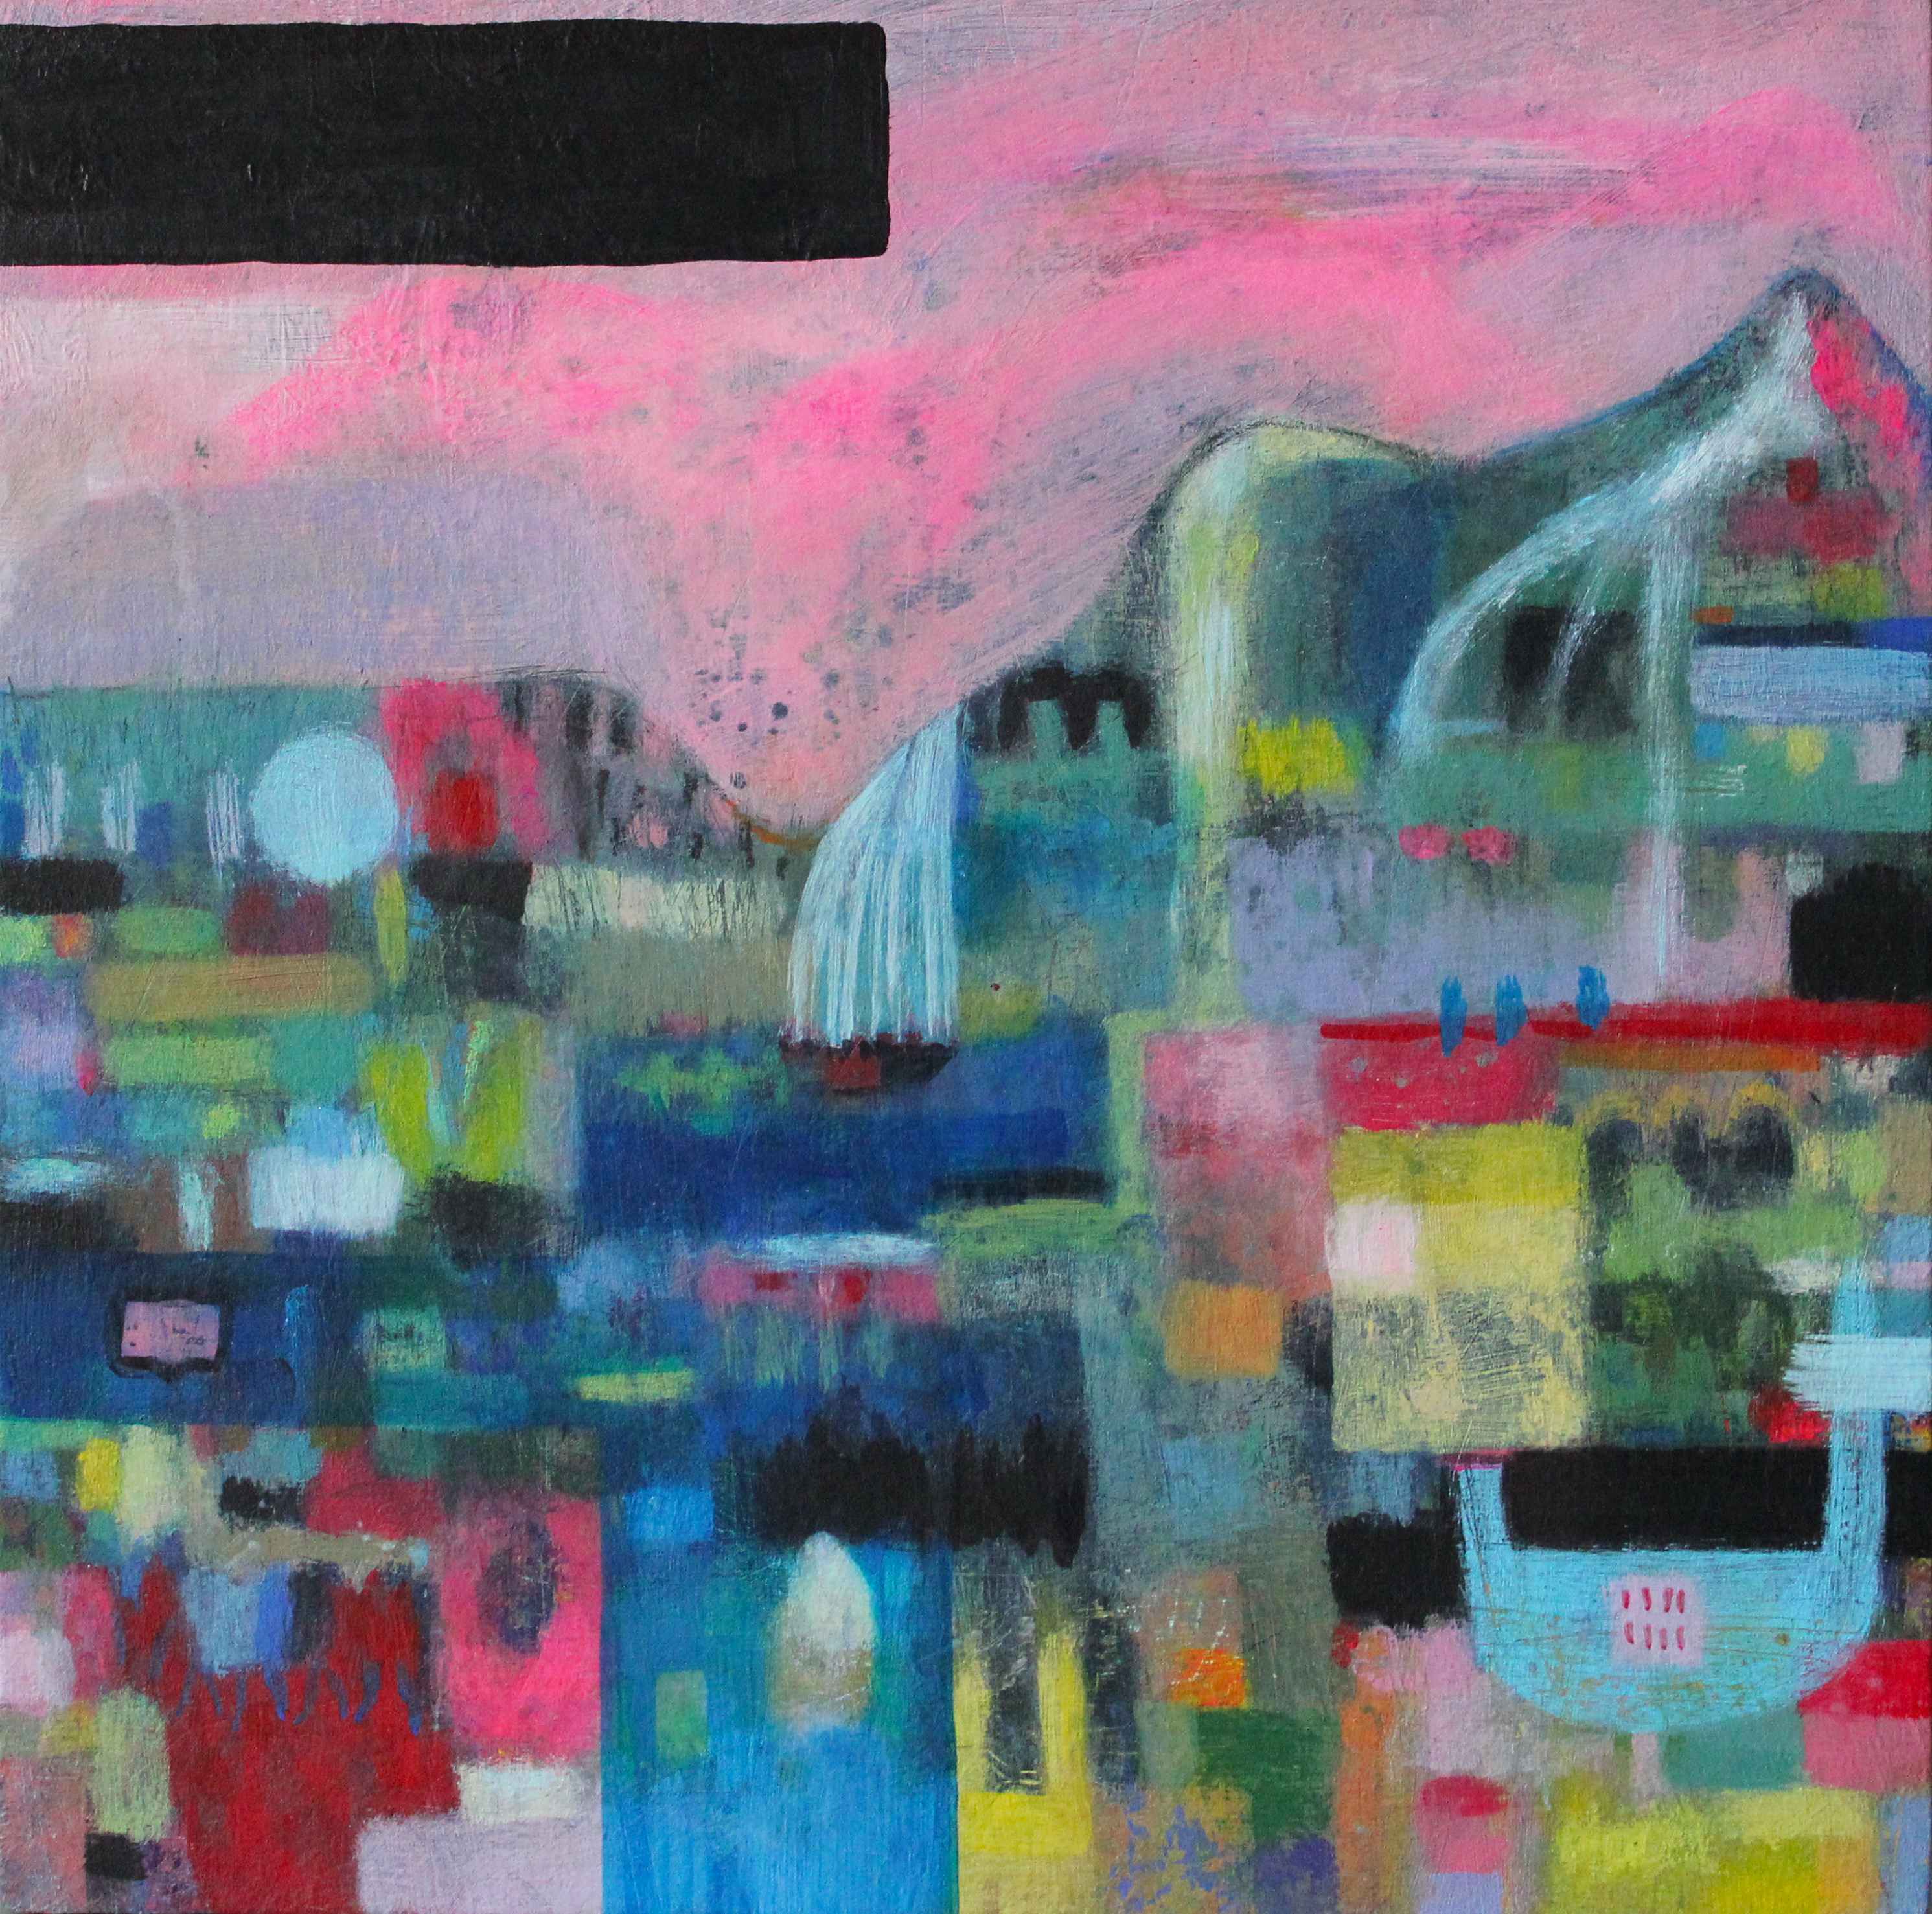 Abstracted landscape painting